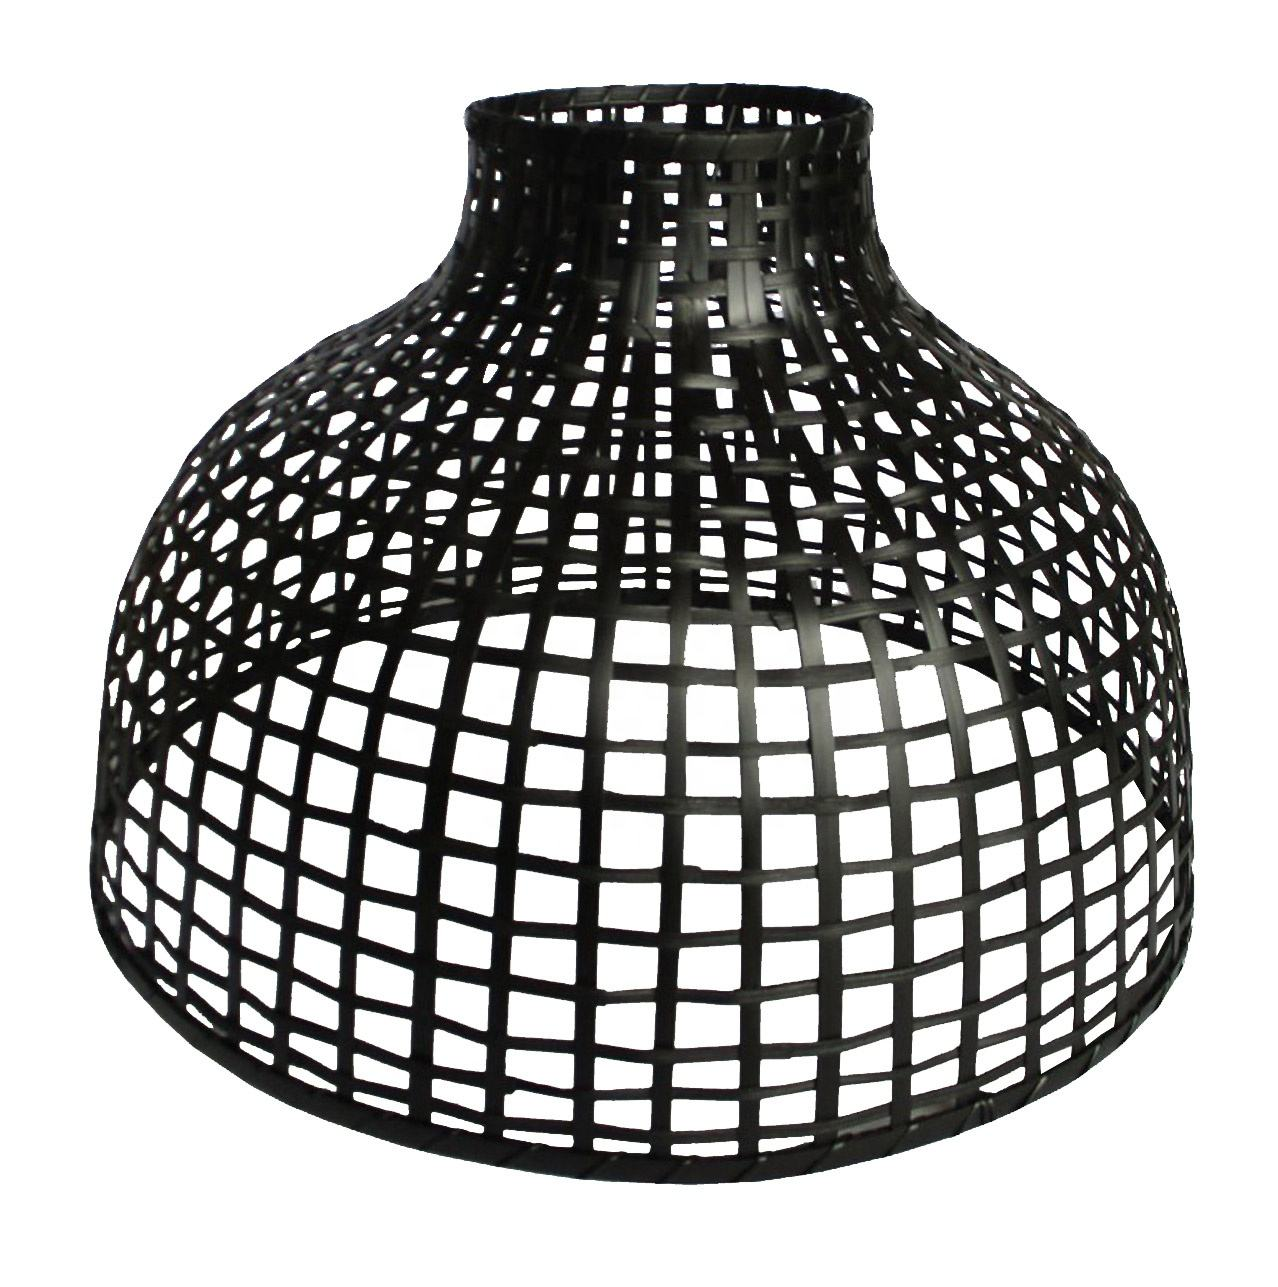 Woven Light Rattan Lamp shade, Pedant Lampshade decor wholesale